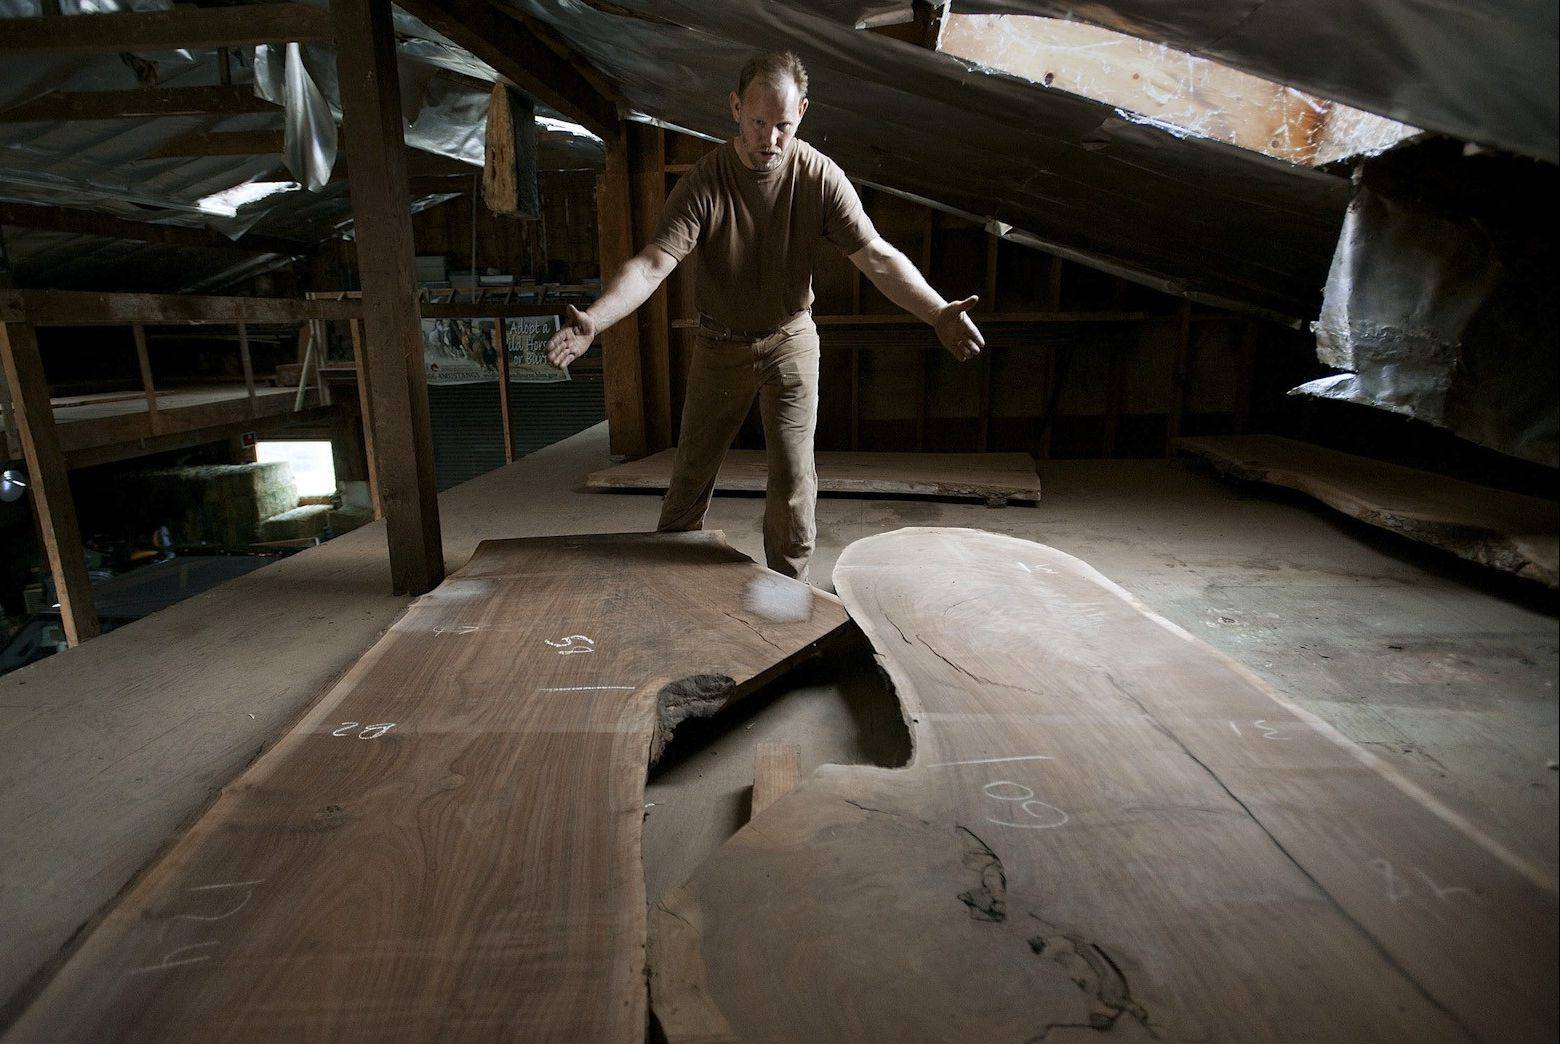 Clark Kayler examines large pieces of wood drying at his home.